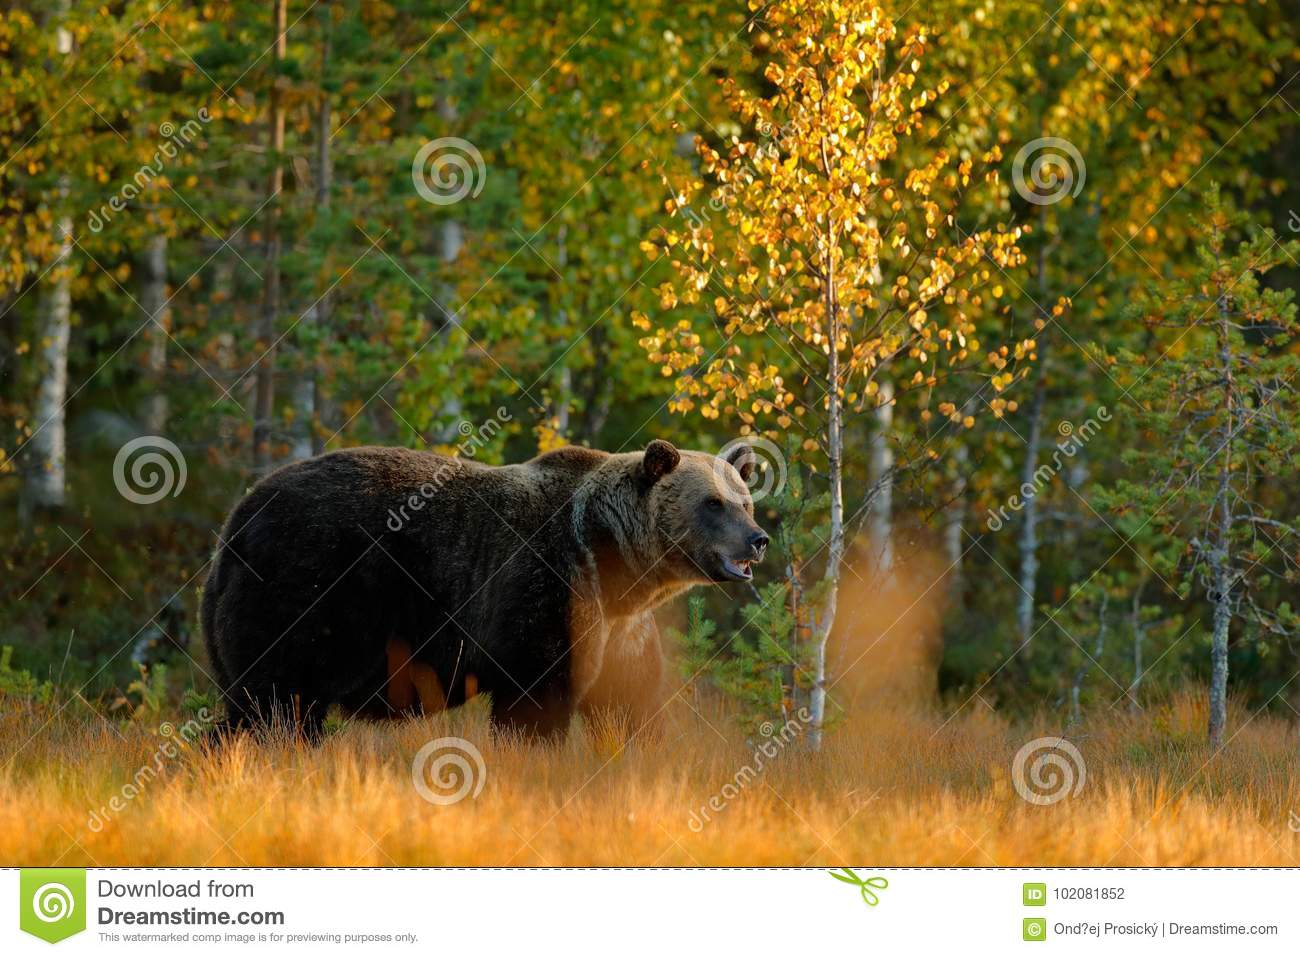 Autumn wood with bear. Beautiful brown bear walking around lake with autumn colours. Dangerous animal in nature meadow habitat. Wi